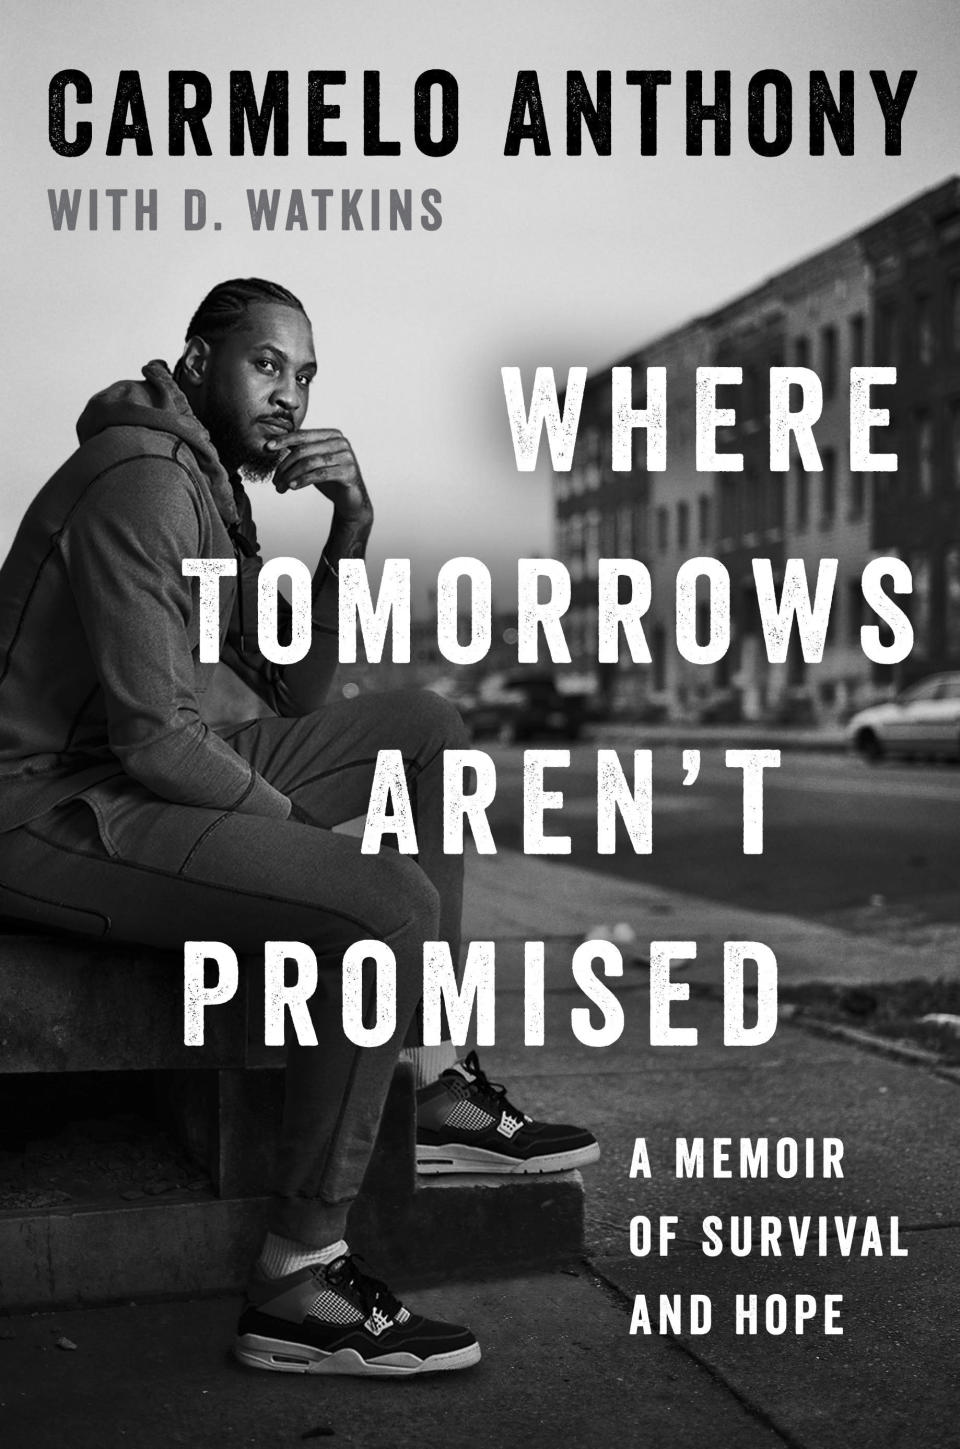 """This cover image released by Gallery Books shows """"Where Tomorrows Aren't Promised: A Memoir of Survival and Hope"""" by Carmelo Anthony with D. Watkins. The book will be released on Sept. 14. (Gallery Books via AP)"""